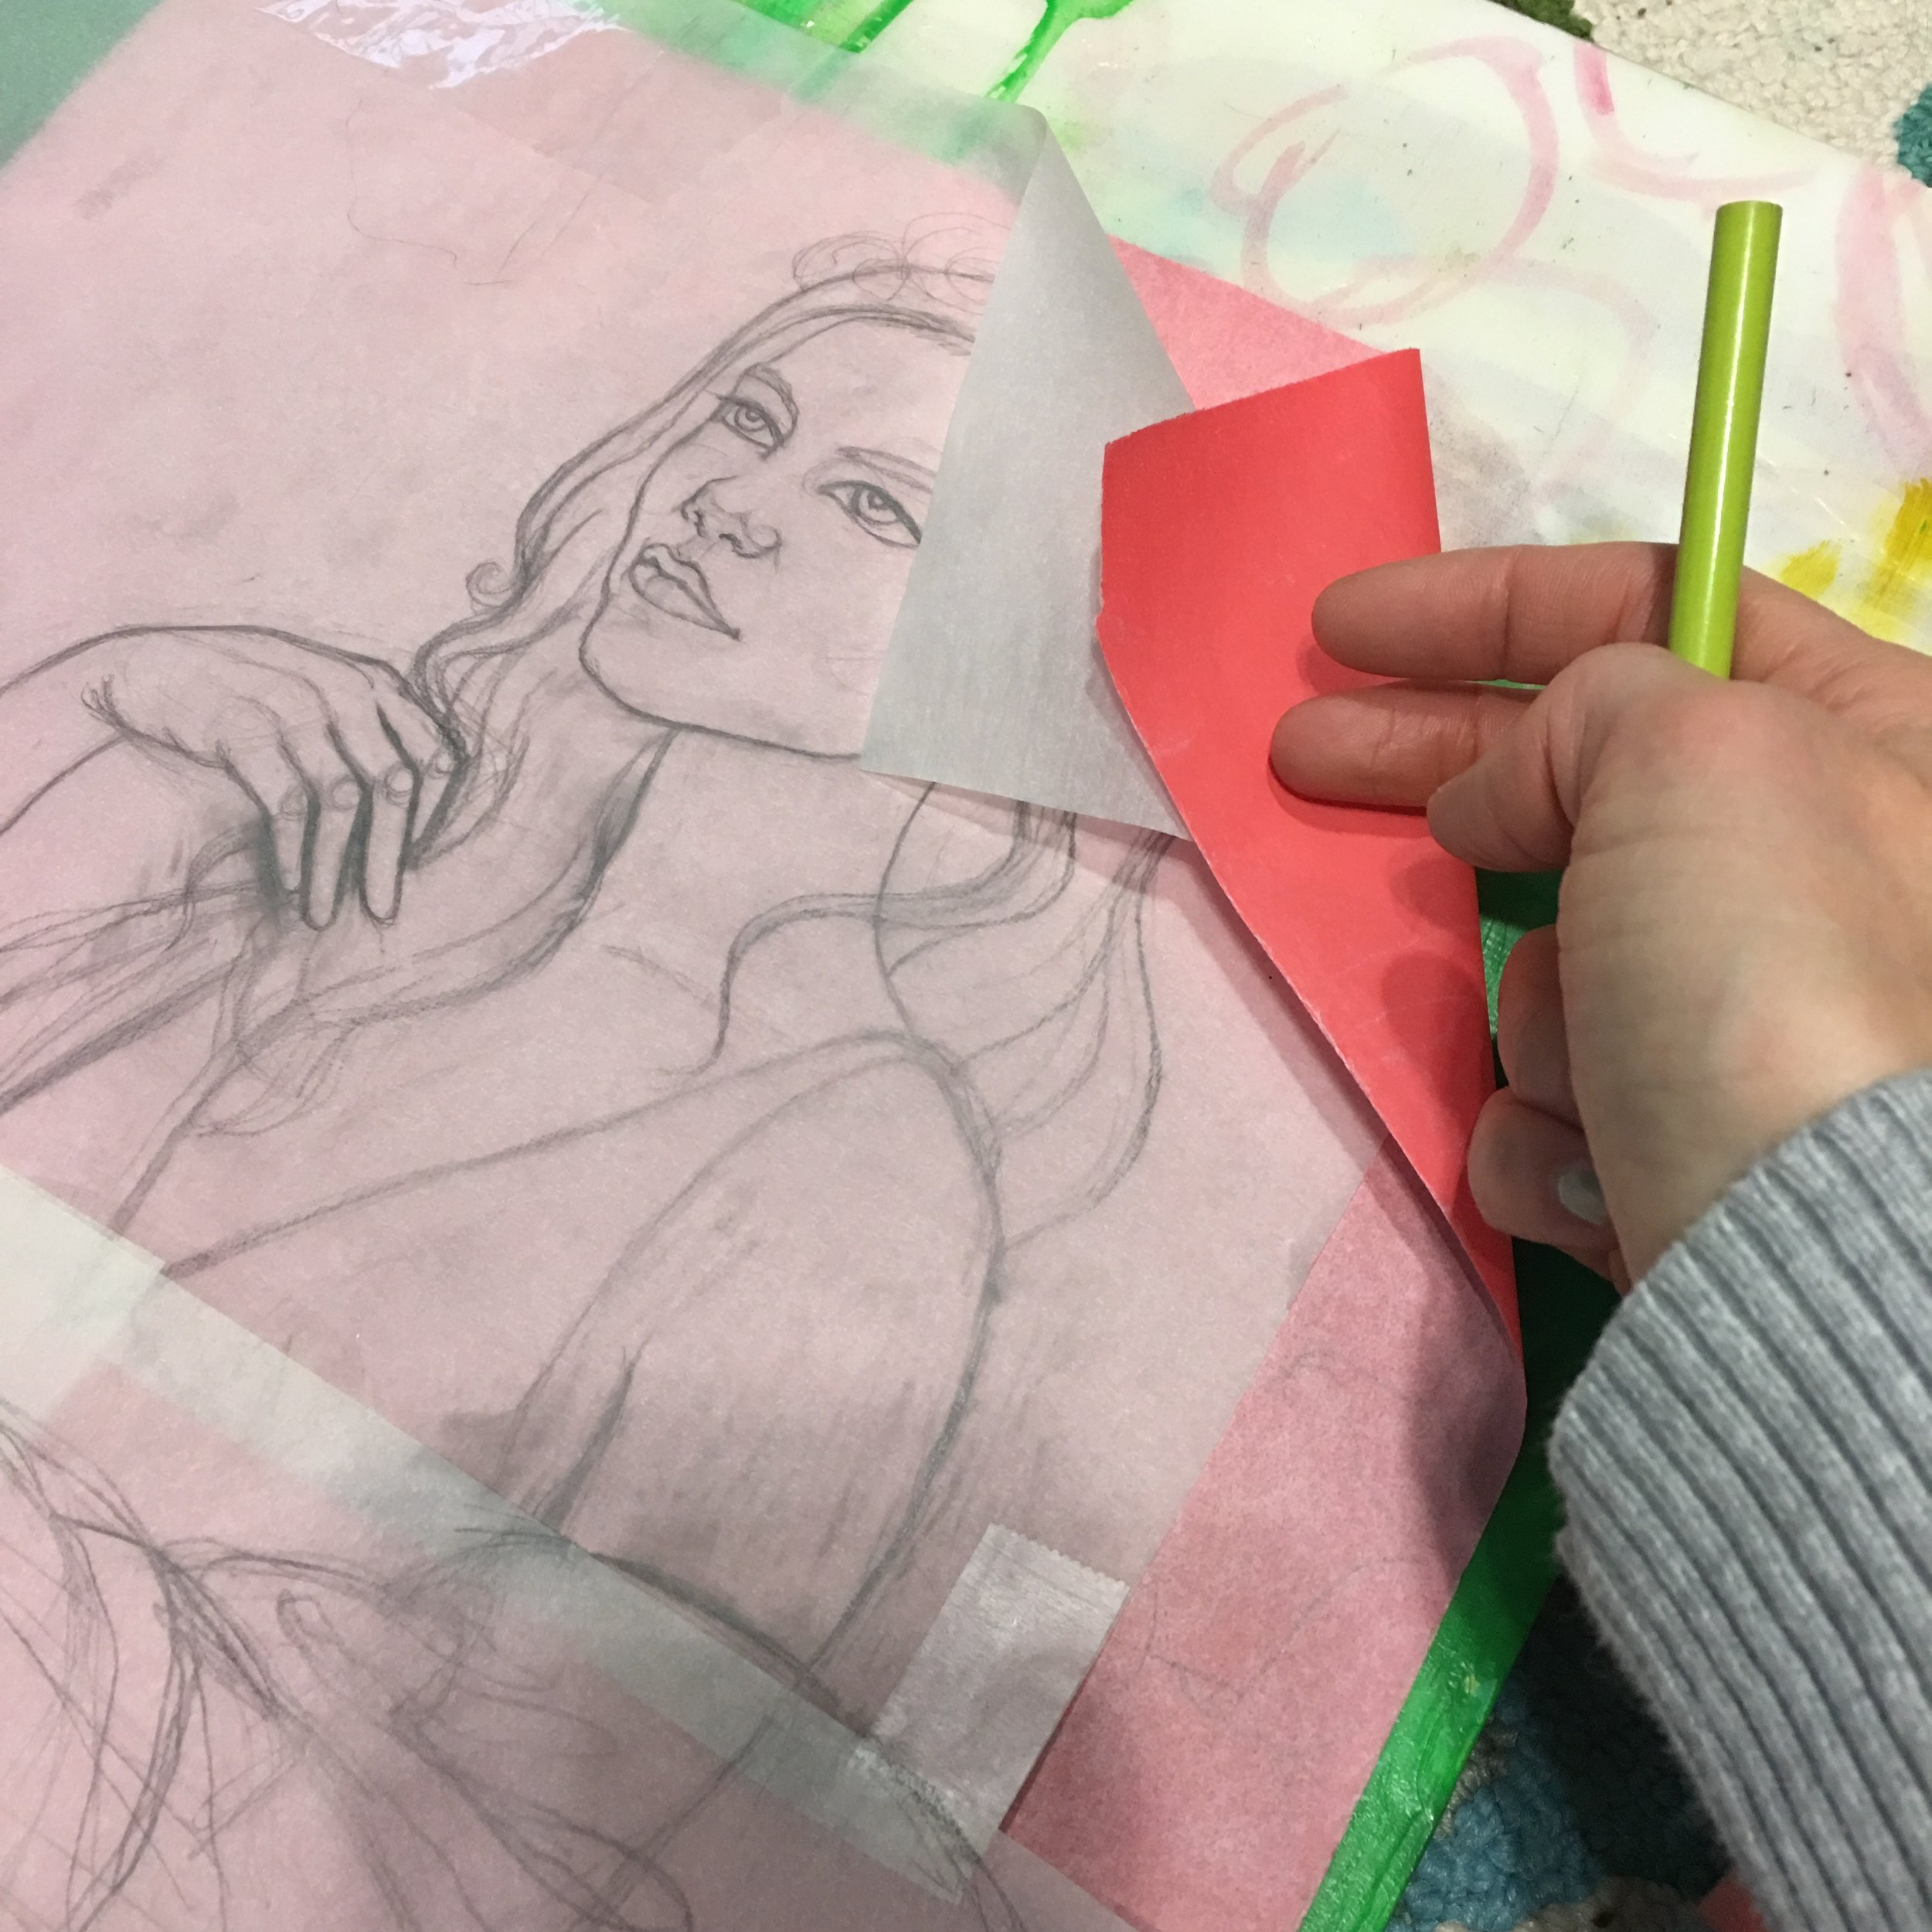 Using red carbon paper, I transfered the drawing to the panel.